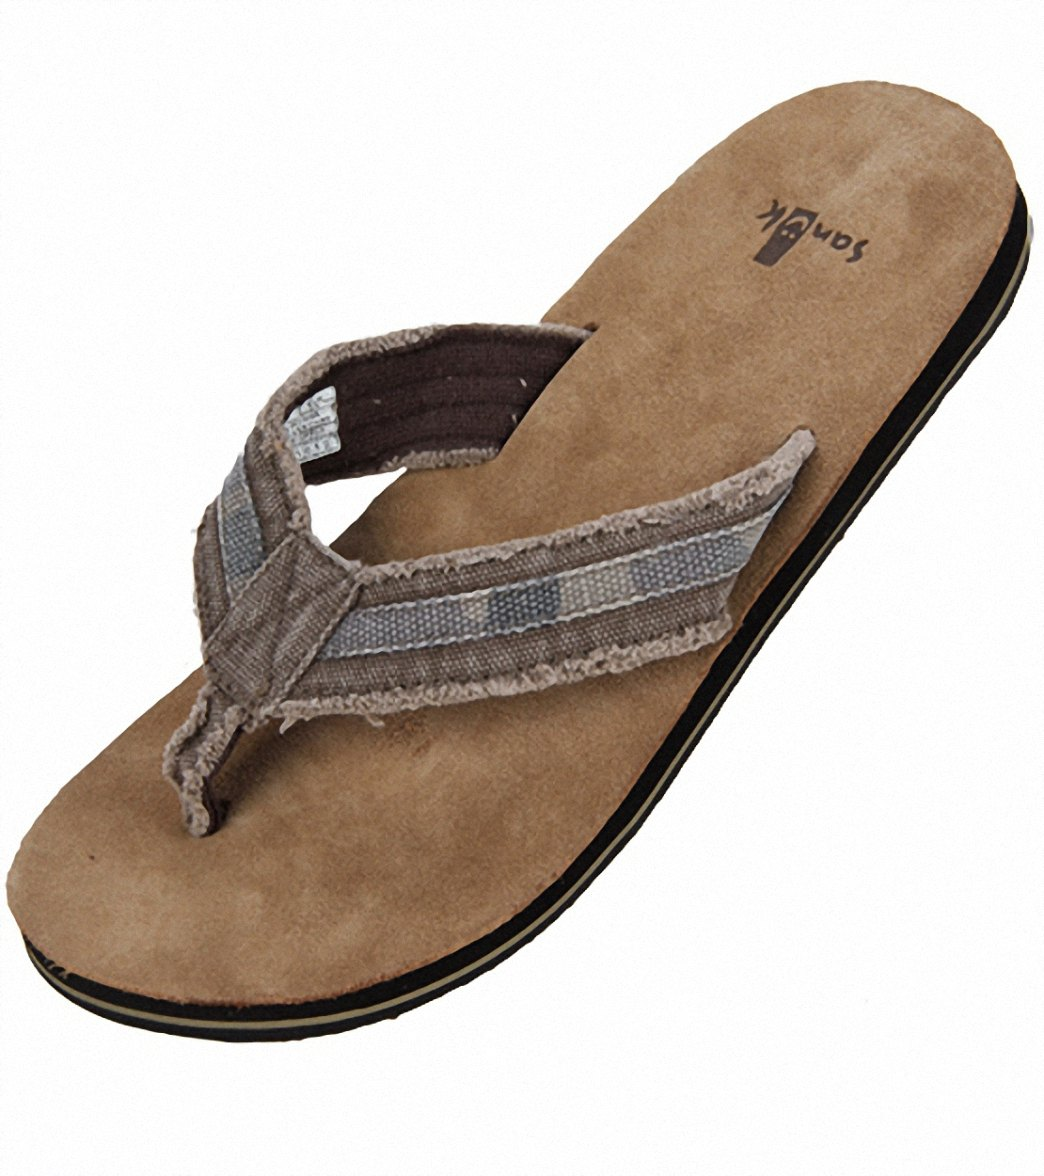 bf3e7ab5cb8 Sanuk Men s Fraid So Flip Flop at SwimOutlet.com